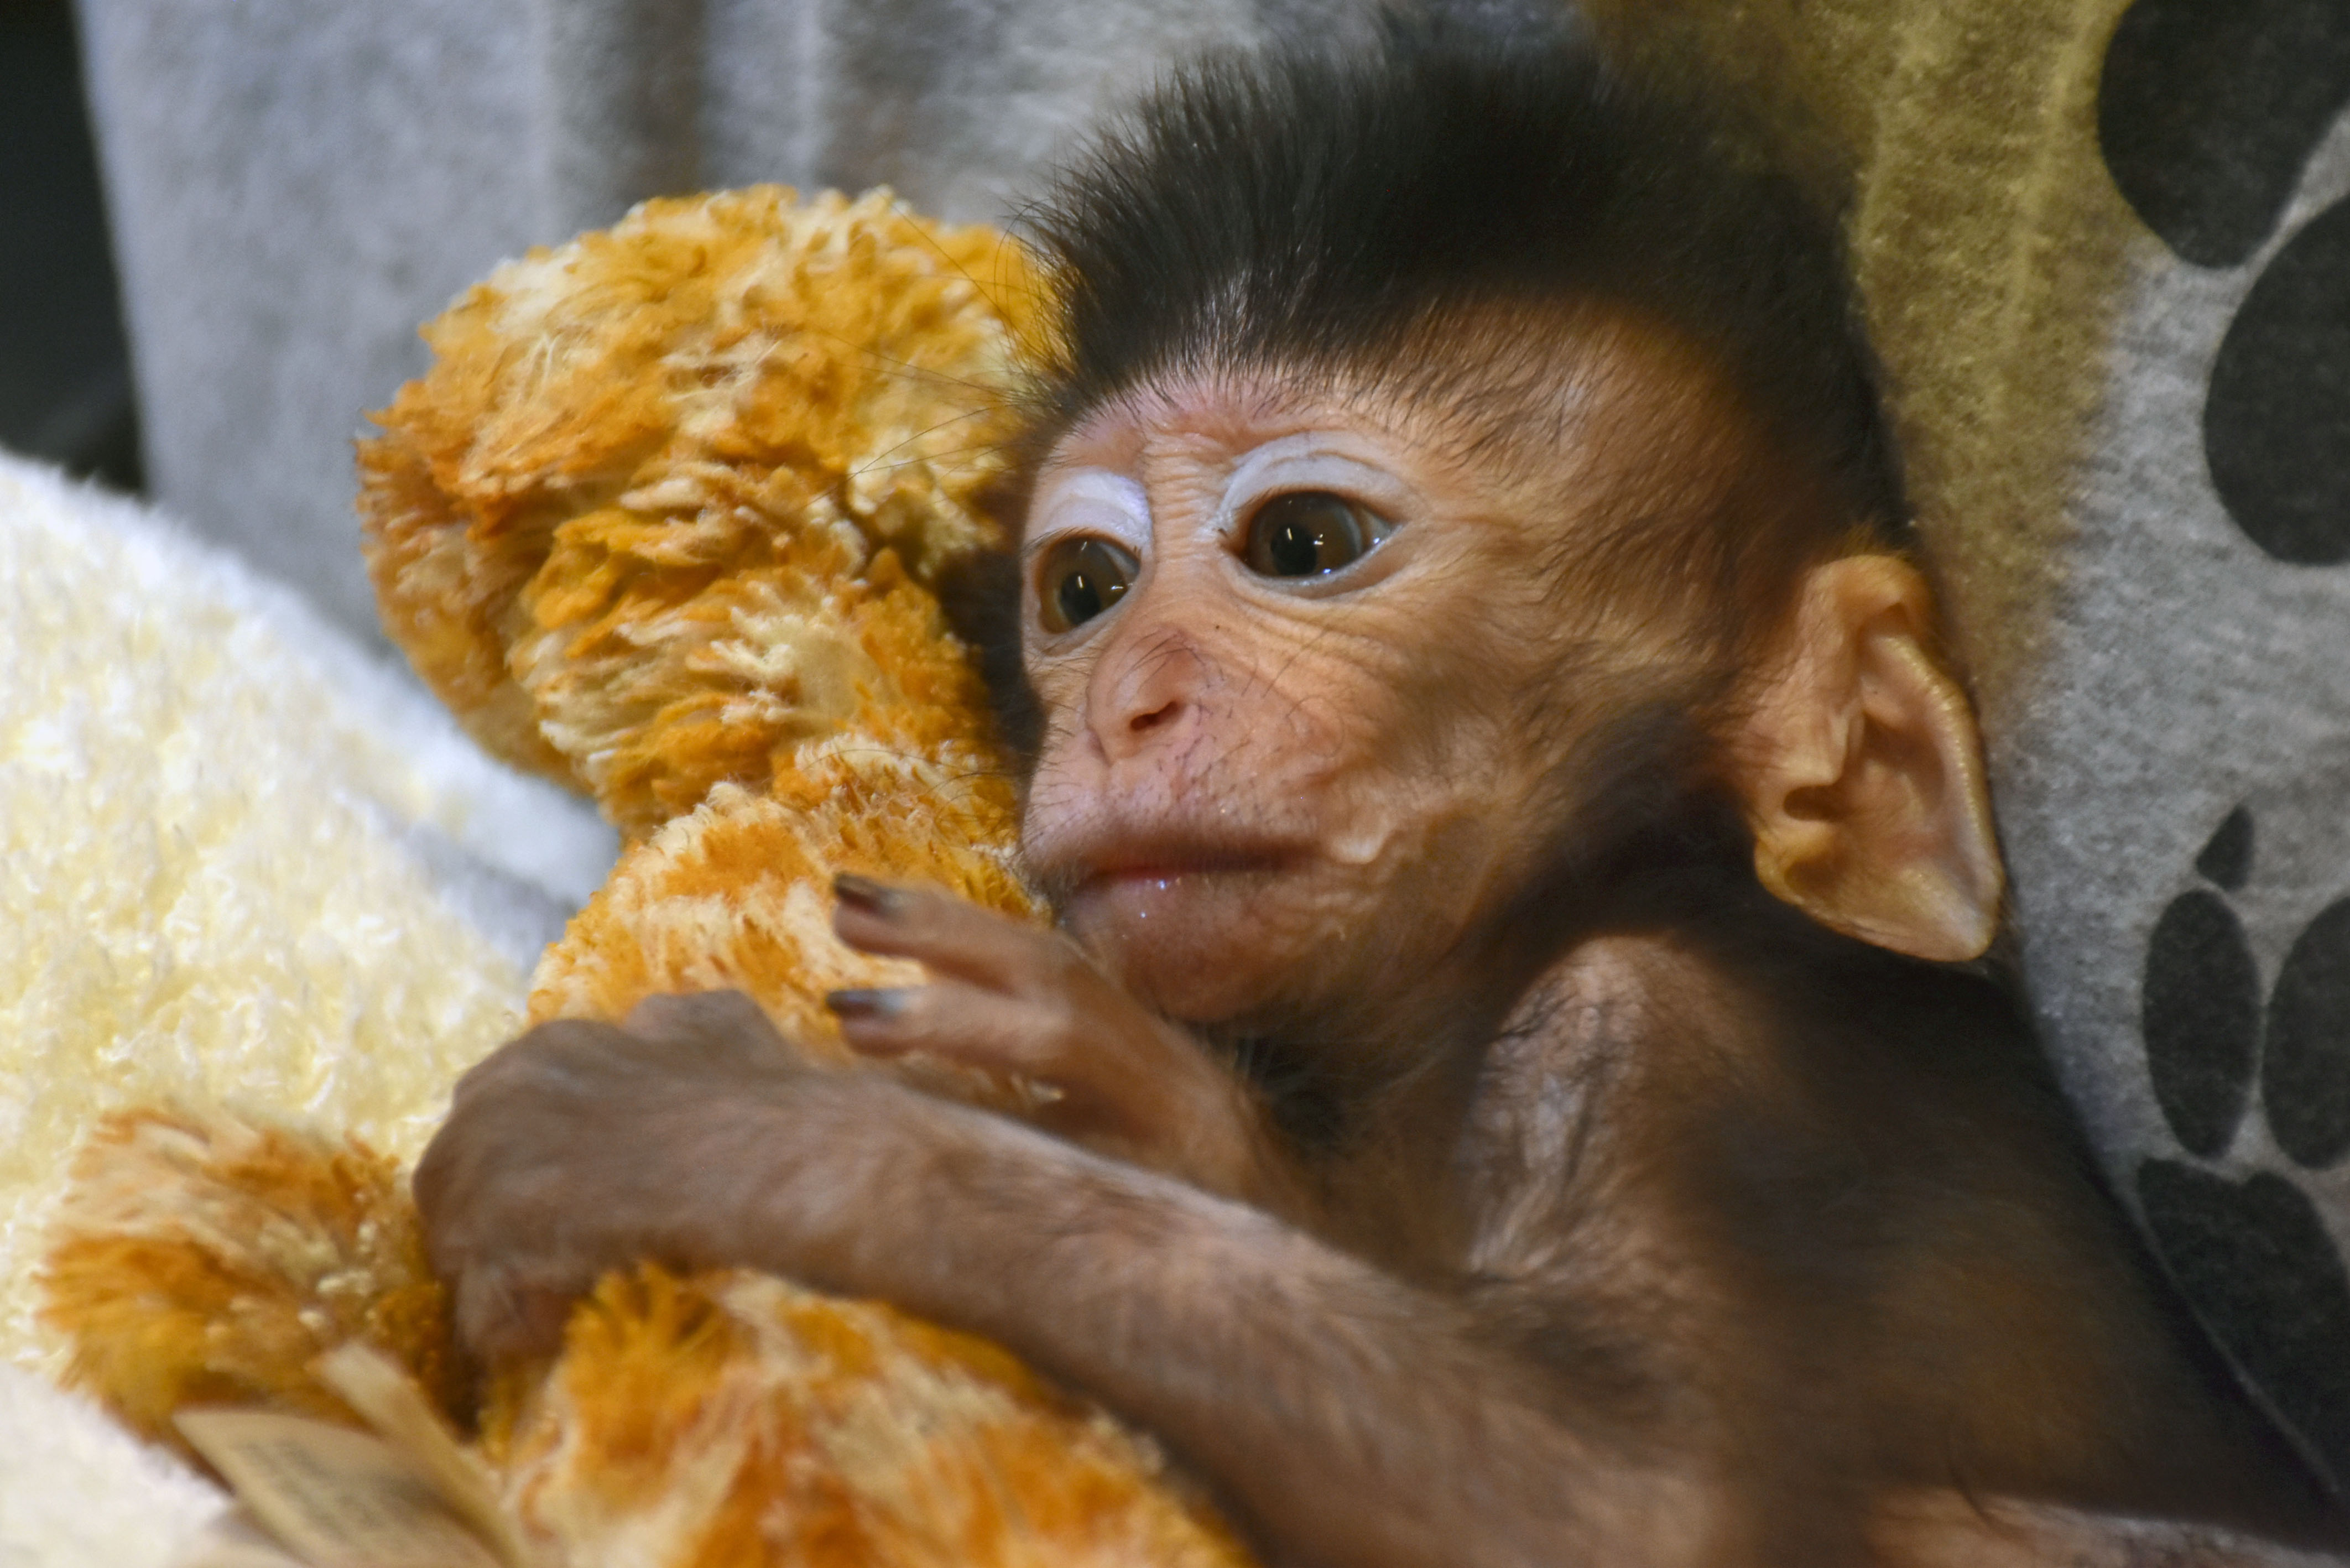 Care Bear Orphaned Baby Monkey Clings Onto Stuffed Toy